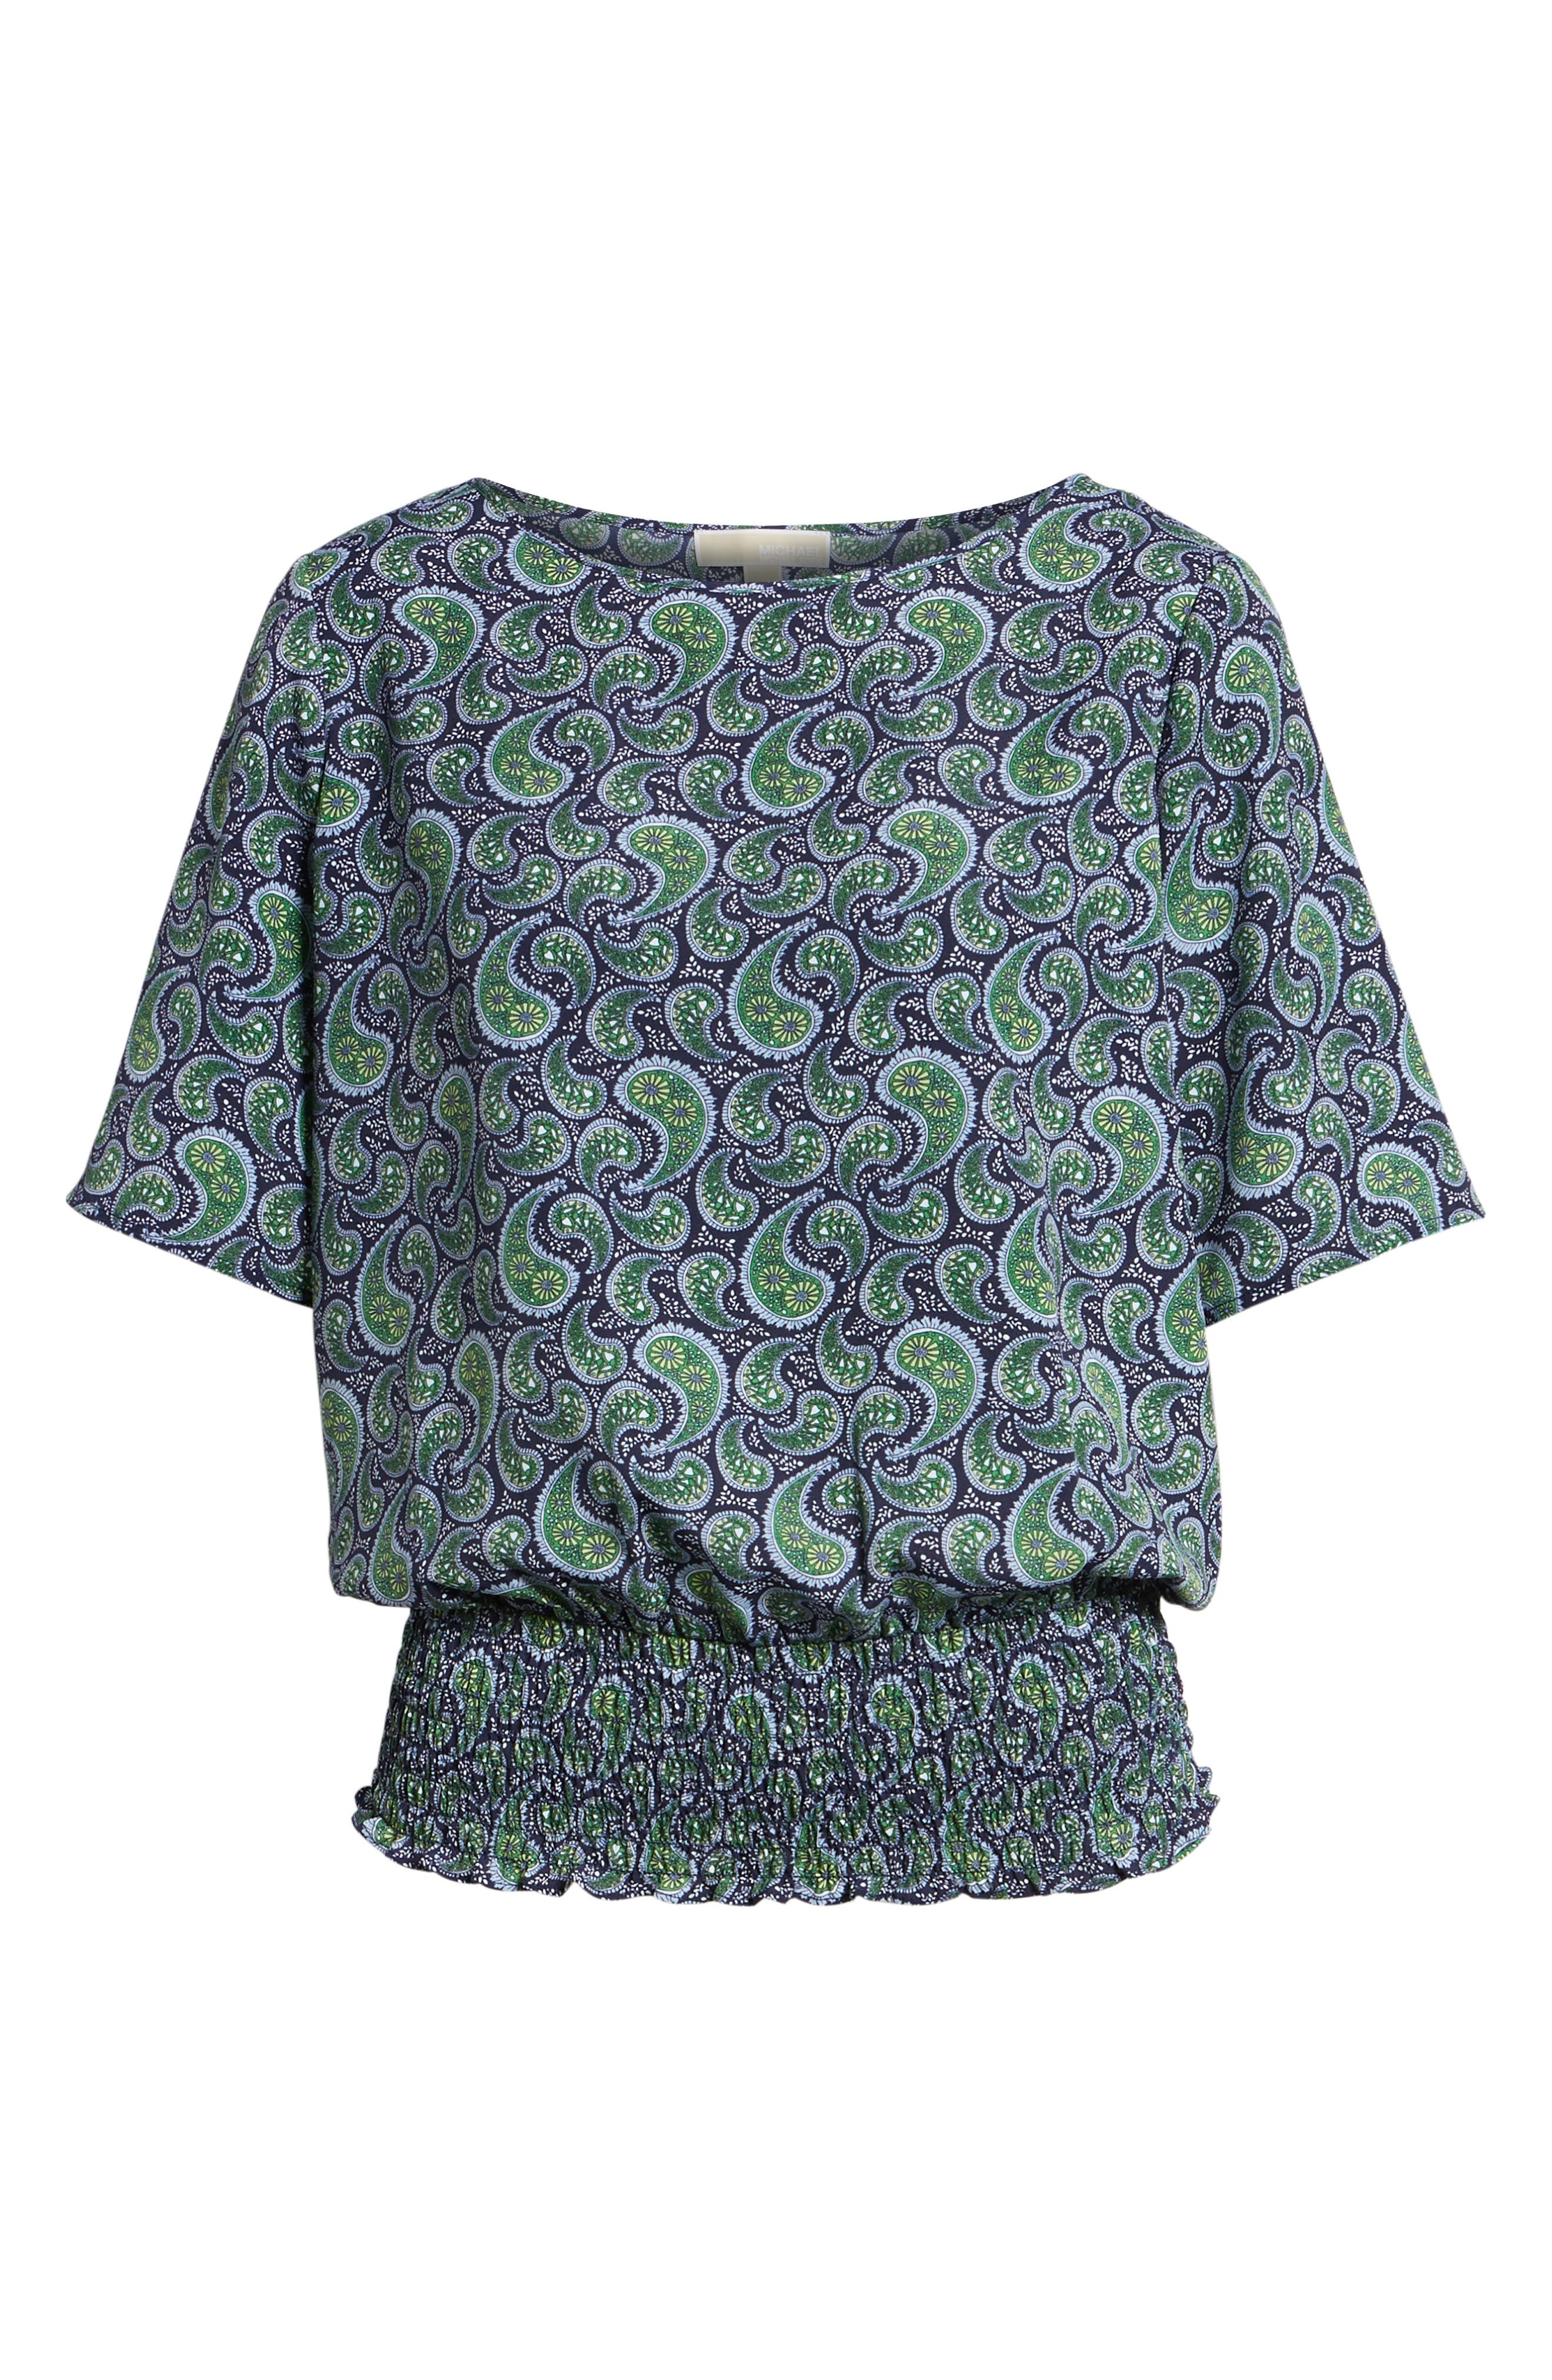 Kimono Sleeve Paisley Top,                             Alternate thumbnail 7, color,                             True Navy/Green Apple Mu